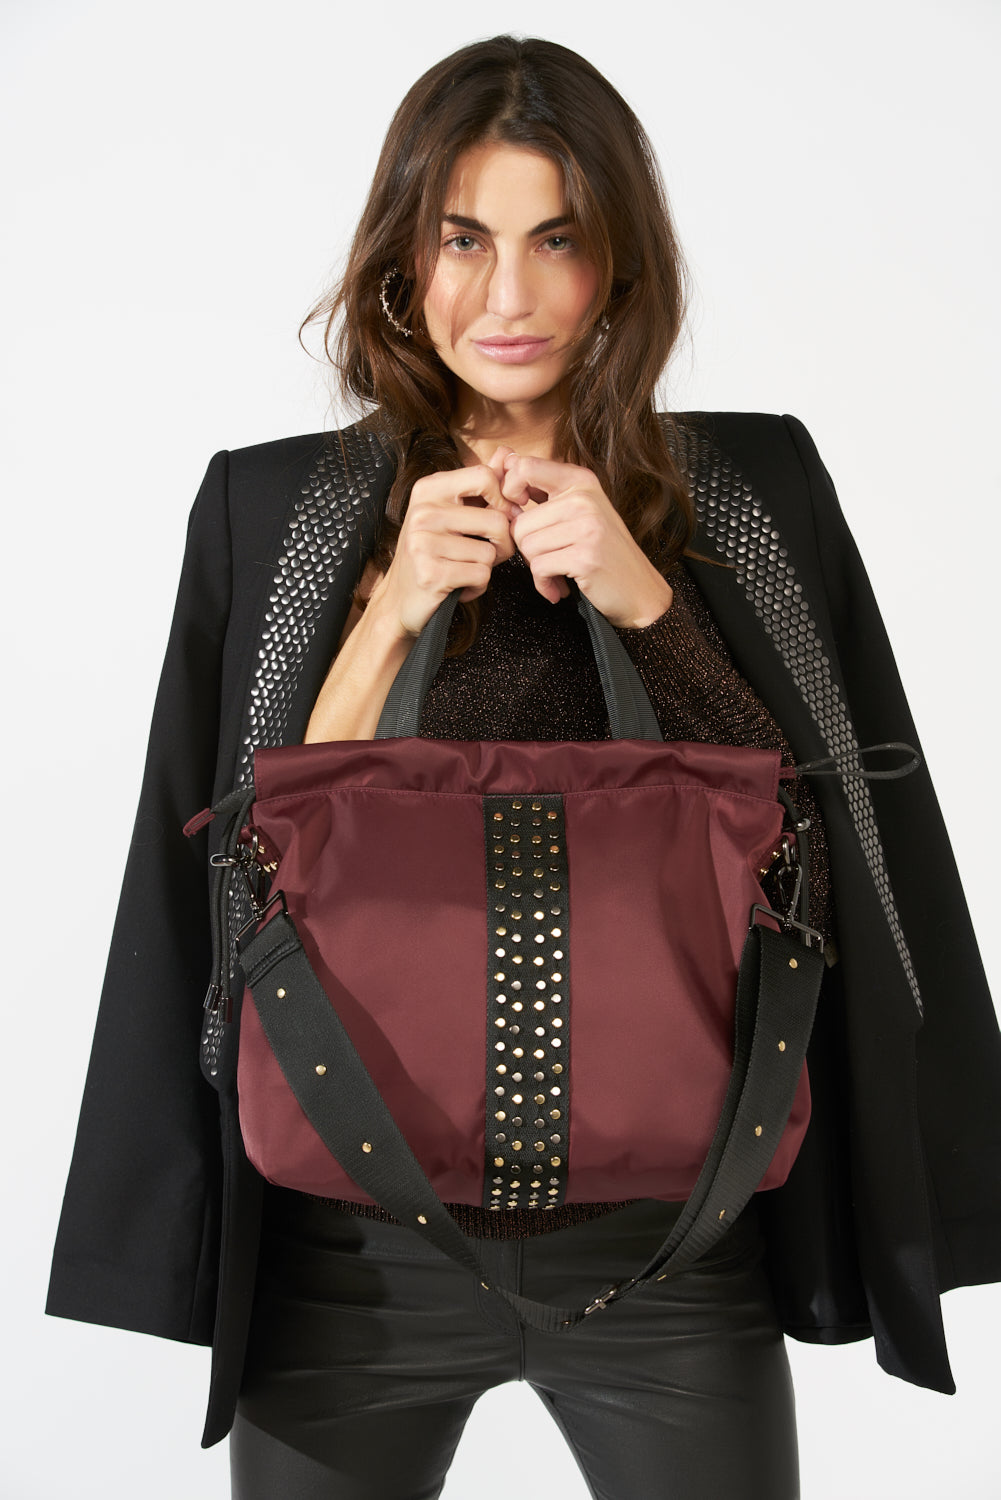 ACE Medium Tote Bag Burgundy model